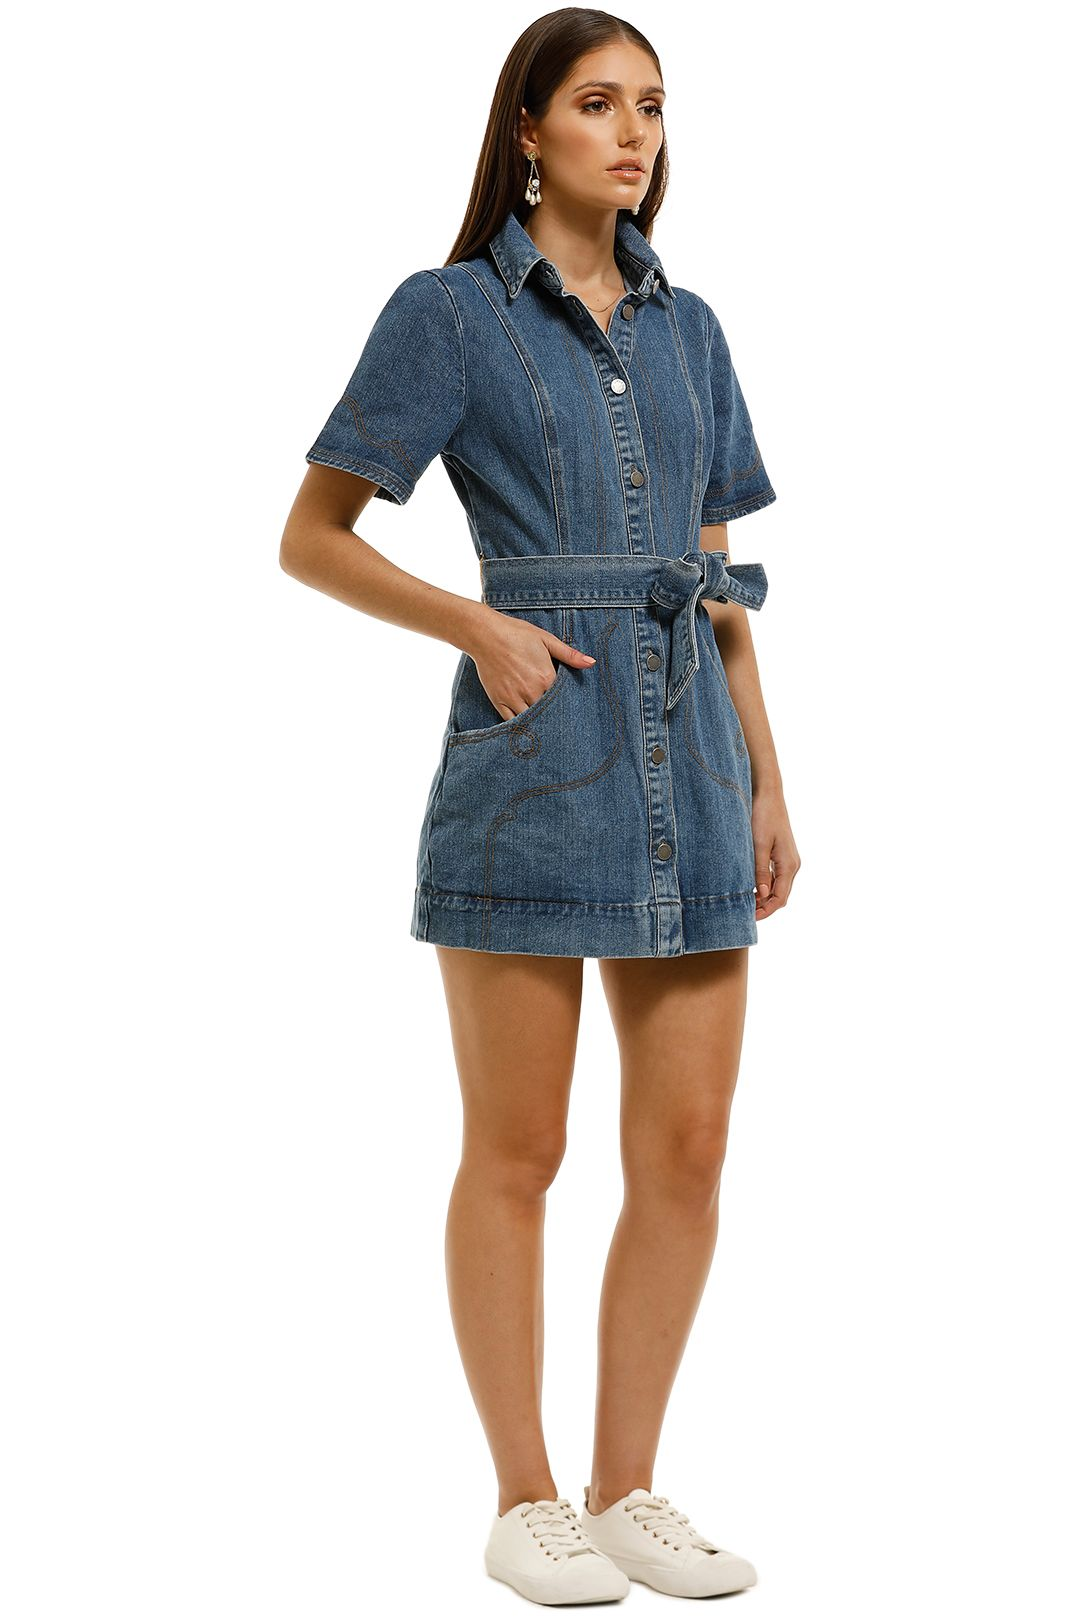 CMEO-Collective-Lifetime-Dress-Blue-Denim-Side